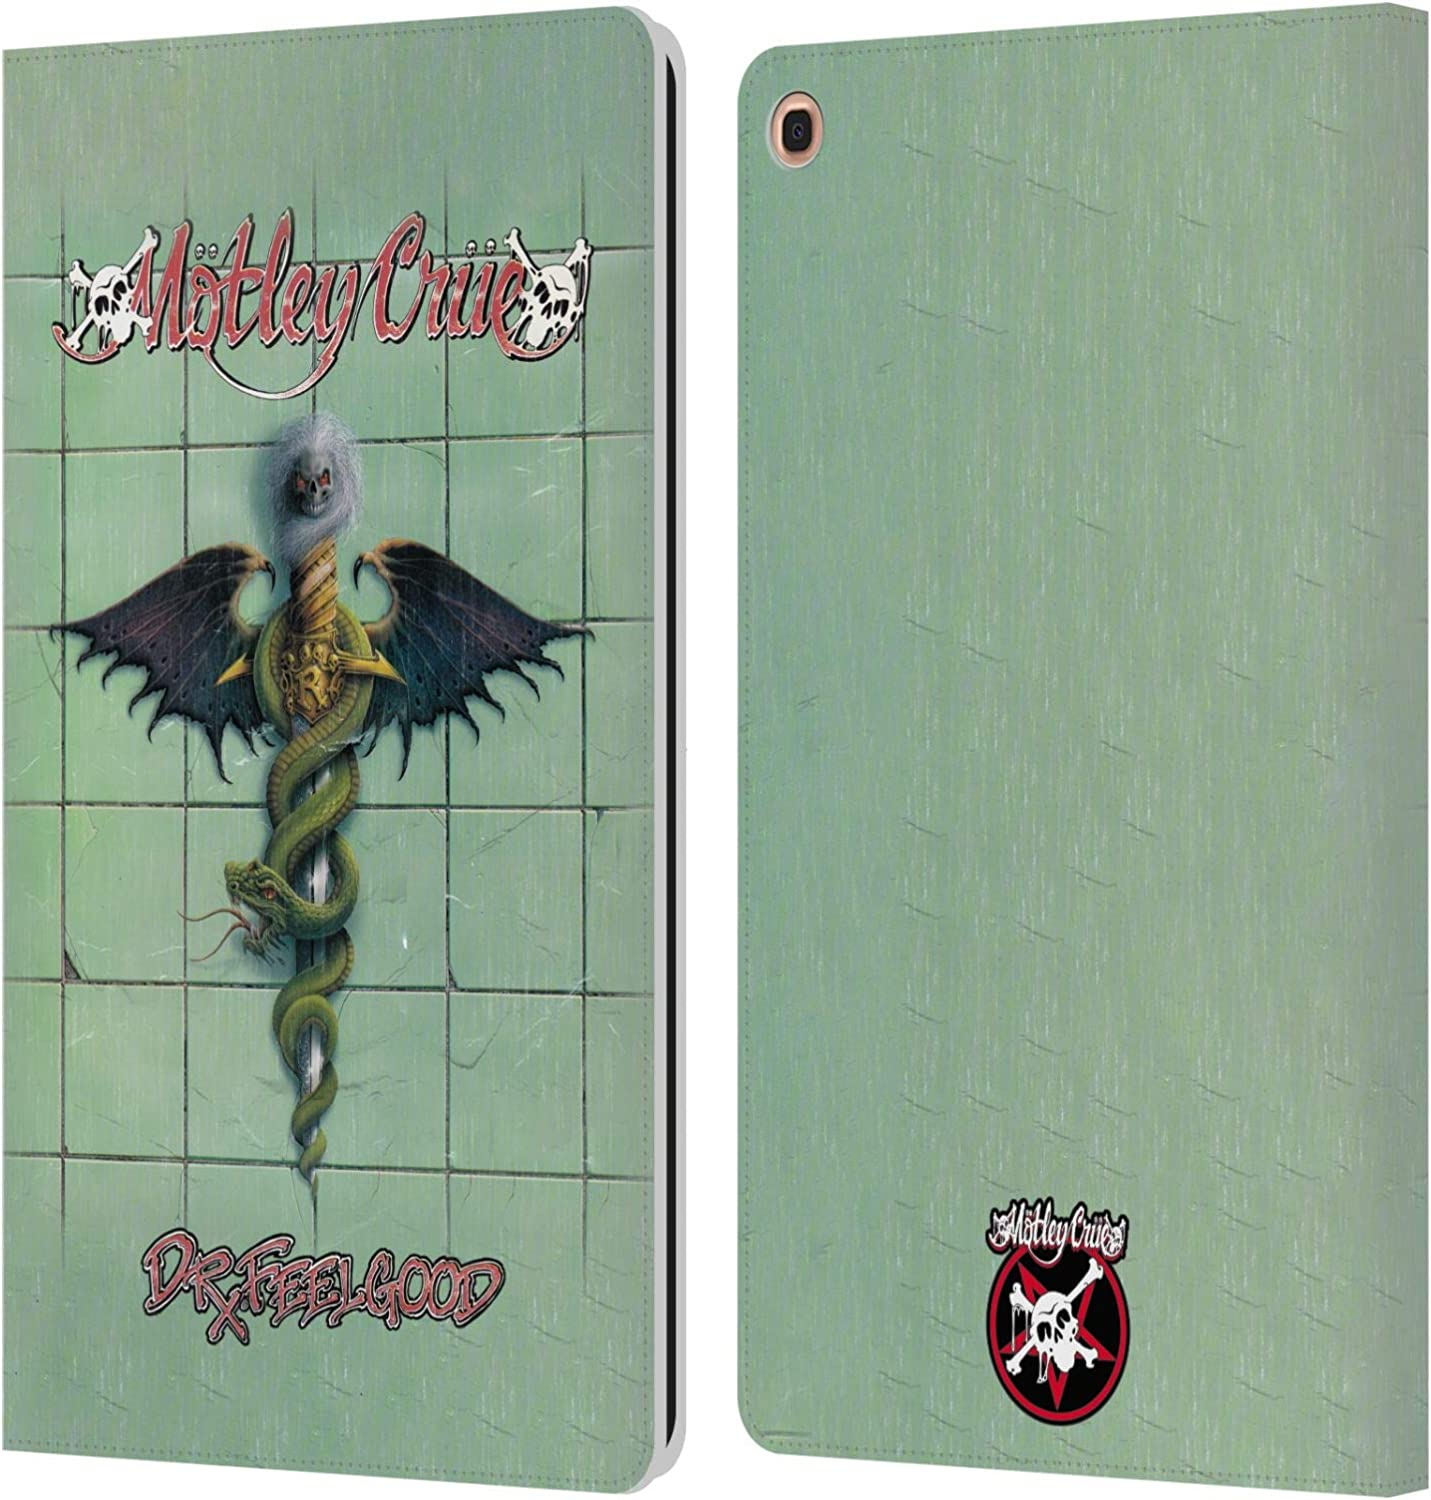 Official Motley Crue Dr Feelgood Albums Leather Book Amazon Co Uk Electronics